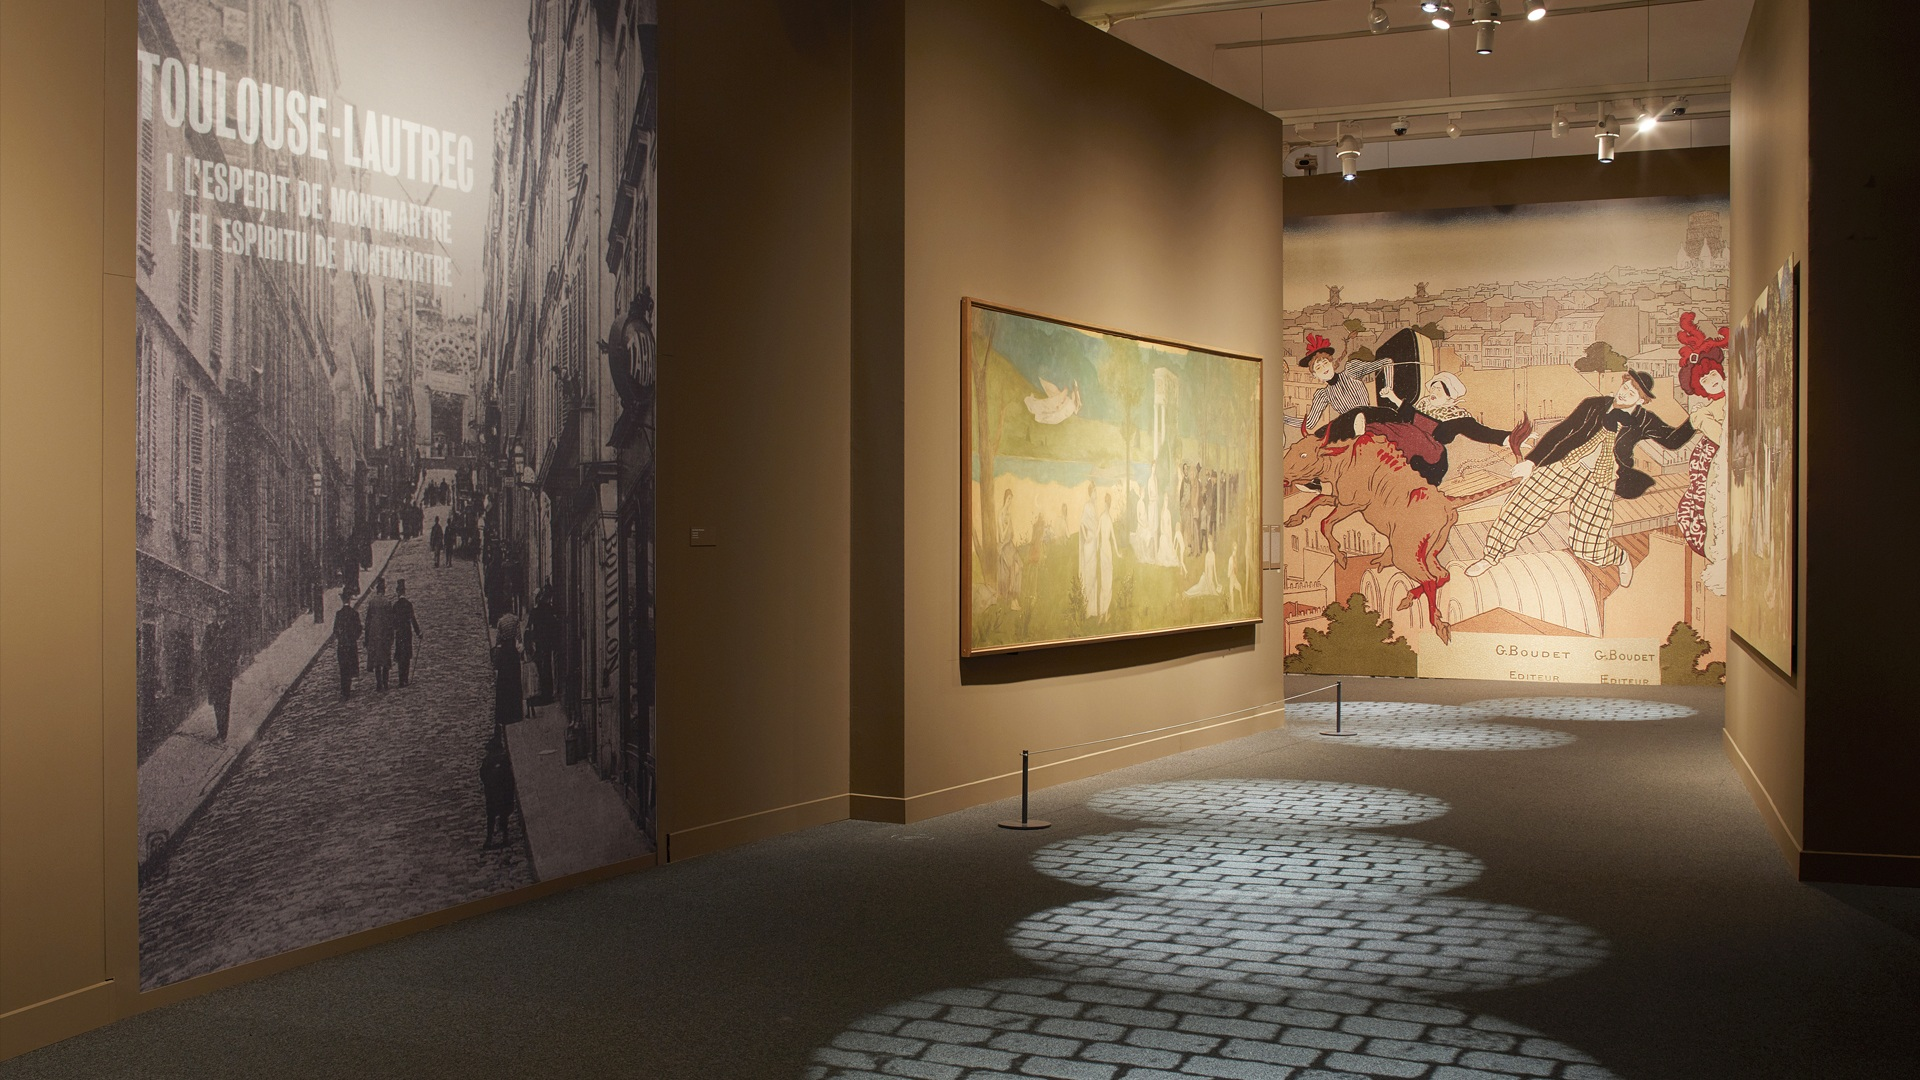 Toulouse-Lautrec and the Spirit of Montmartre